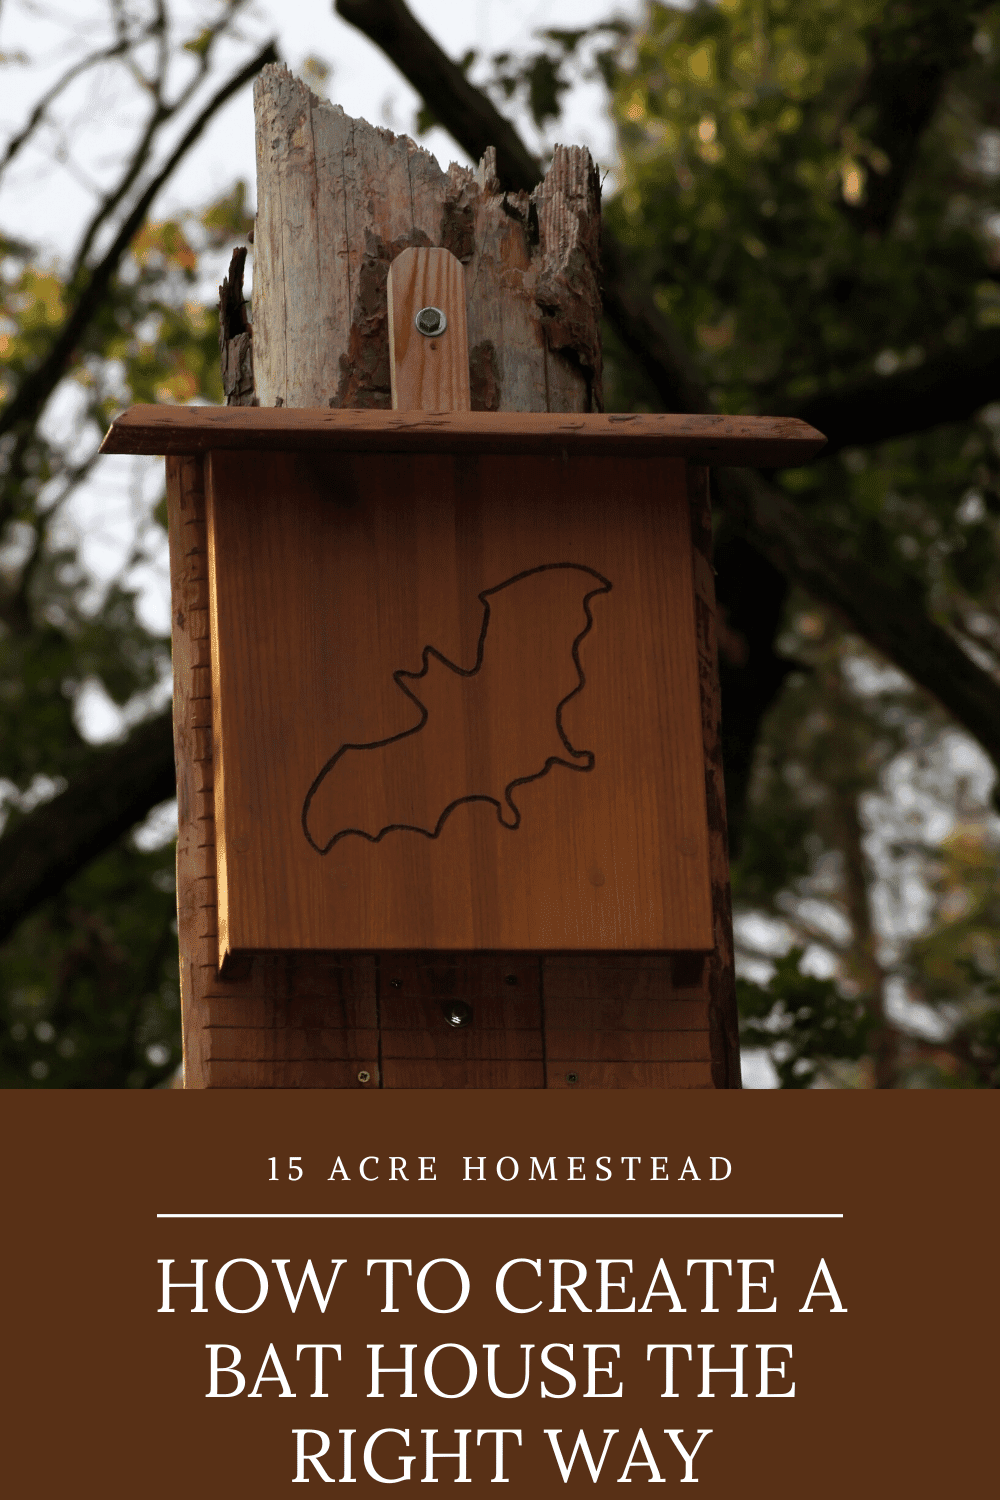 Having a bat house on your property can be very beneficial to your homestead. Especially if you are trying to control the mosquitoes! Learn how to make a bat house correctly.